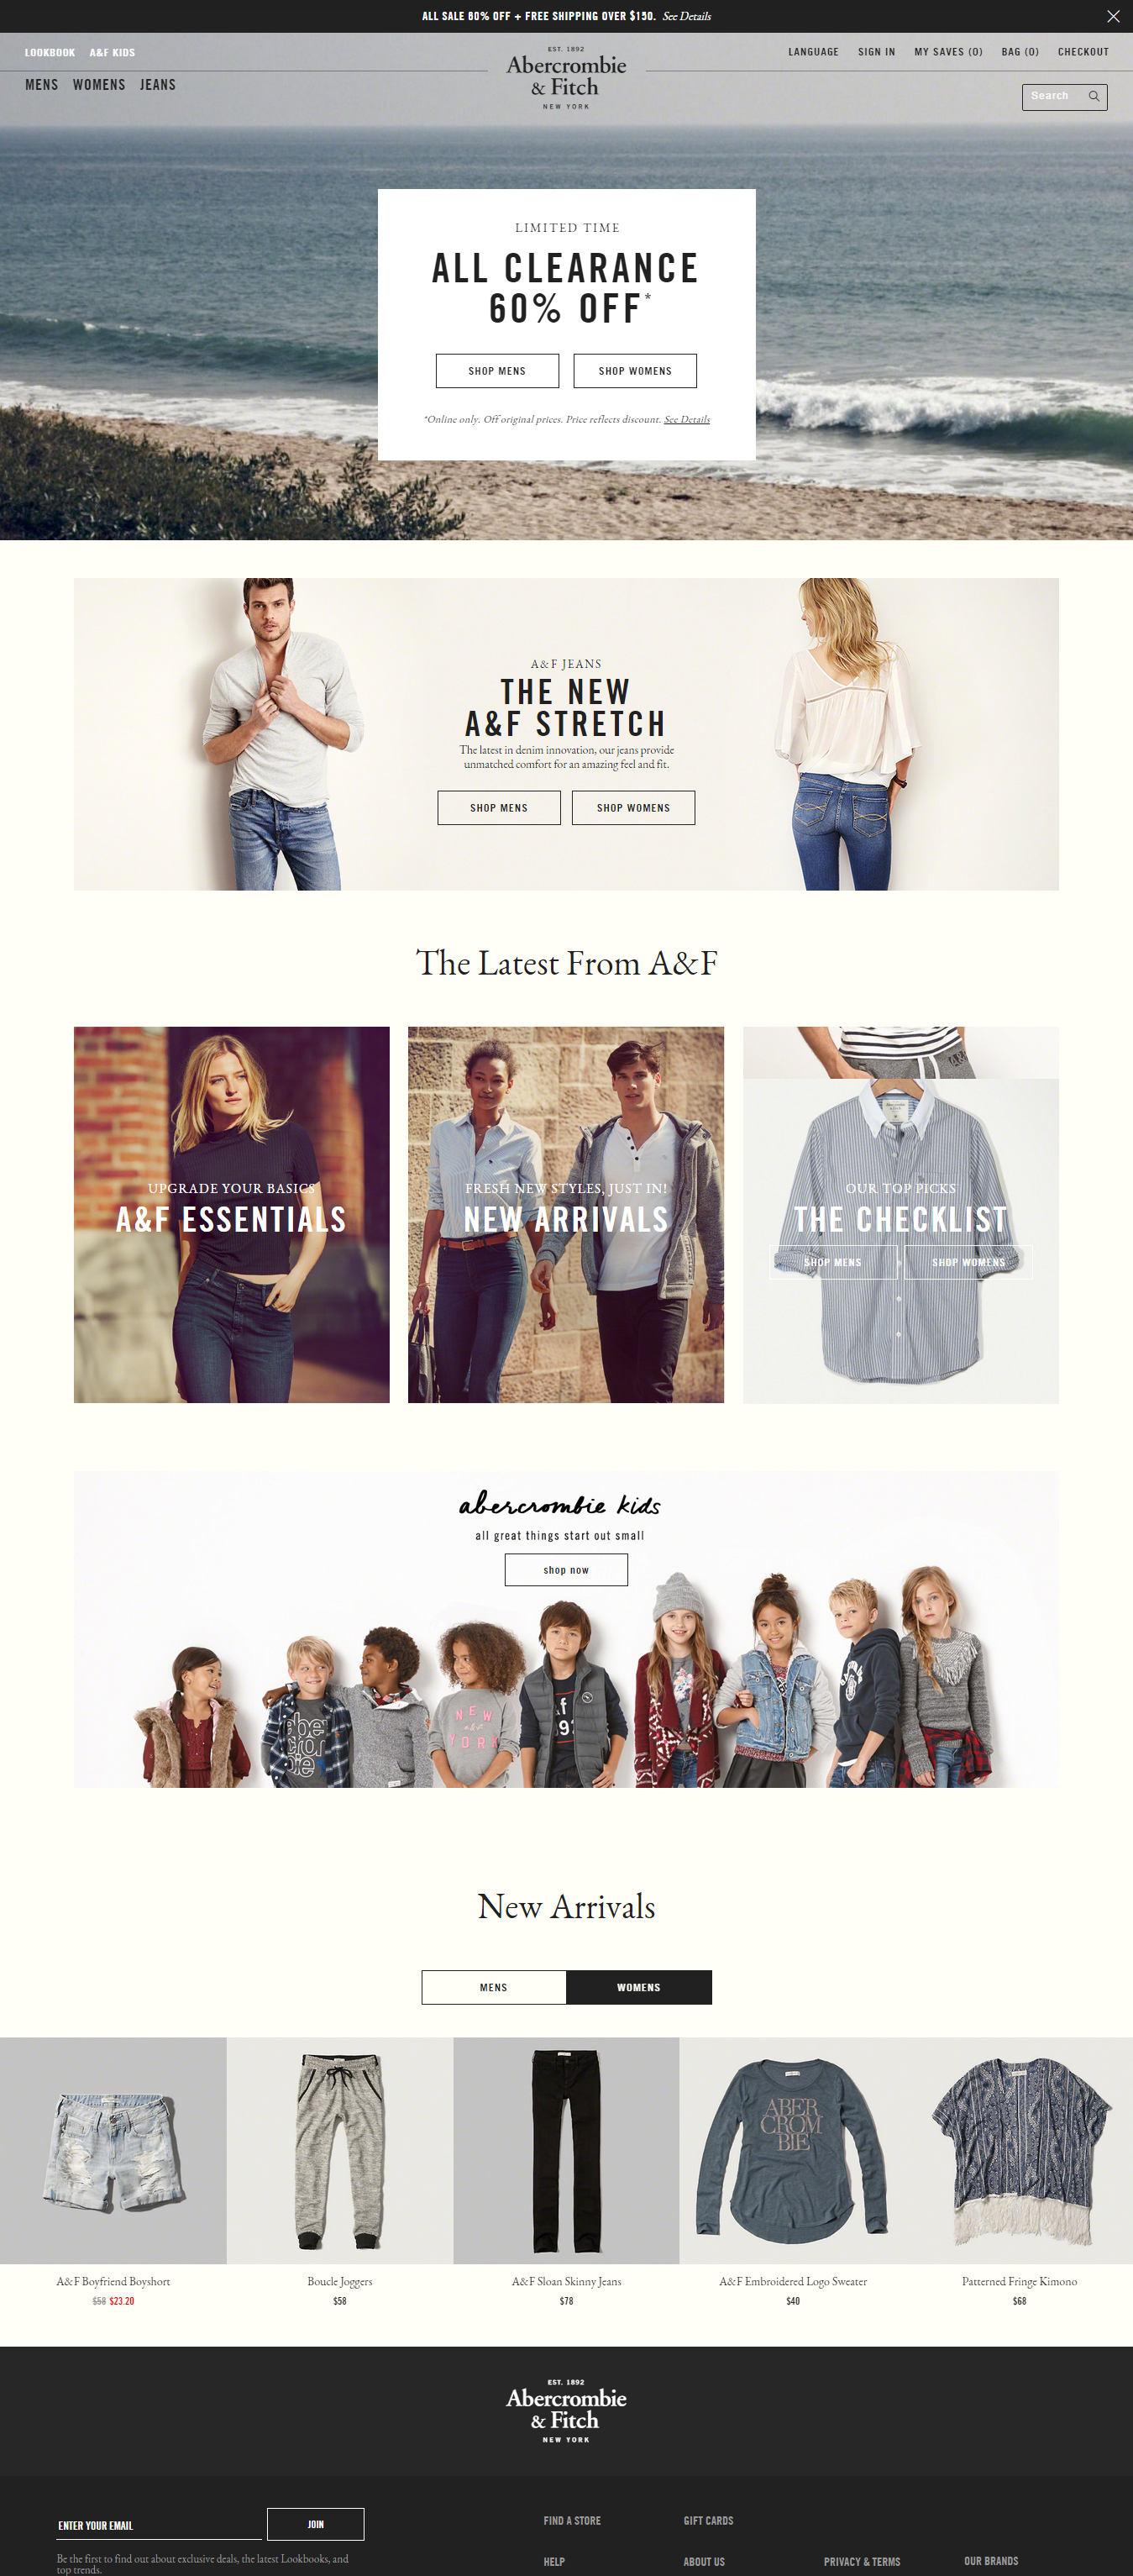 Abercrombie & Fitch company profile - Office locations, jobs, key ...